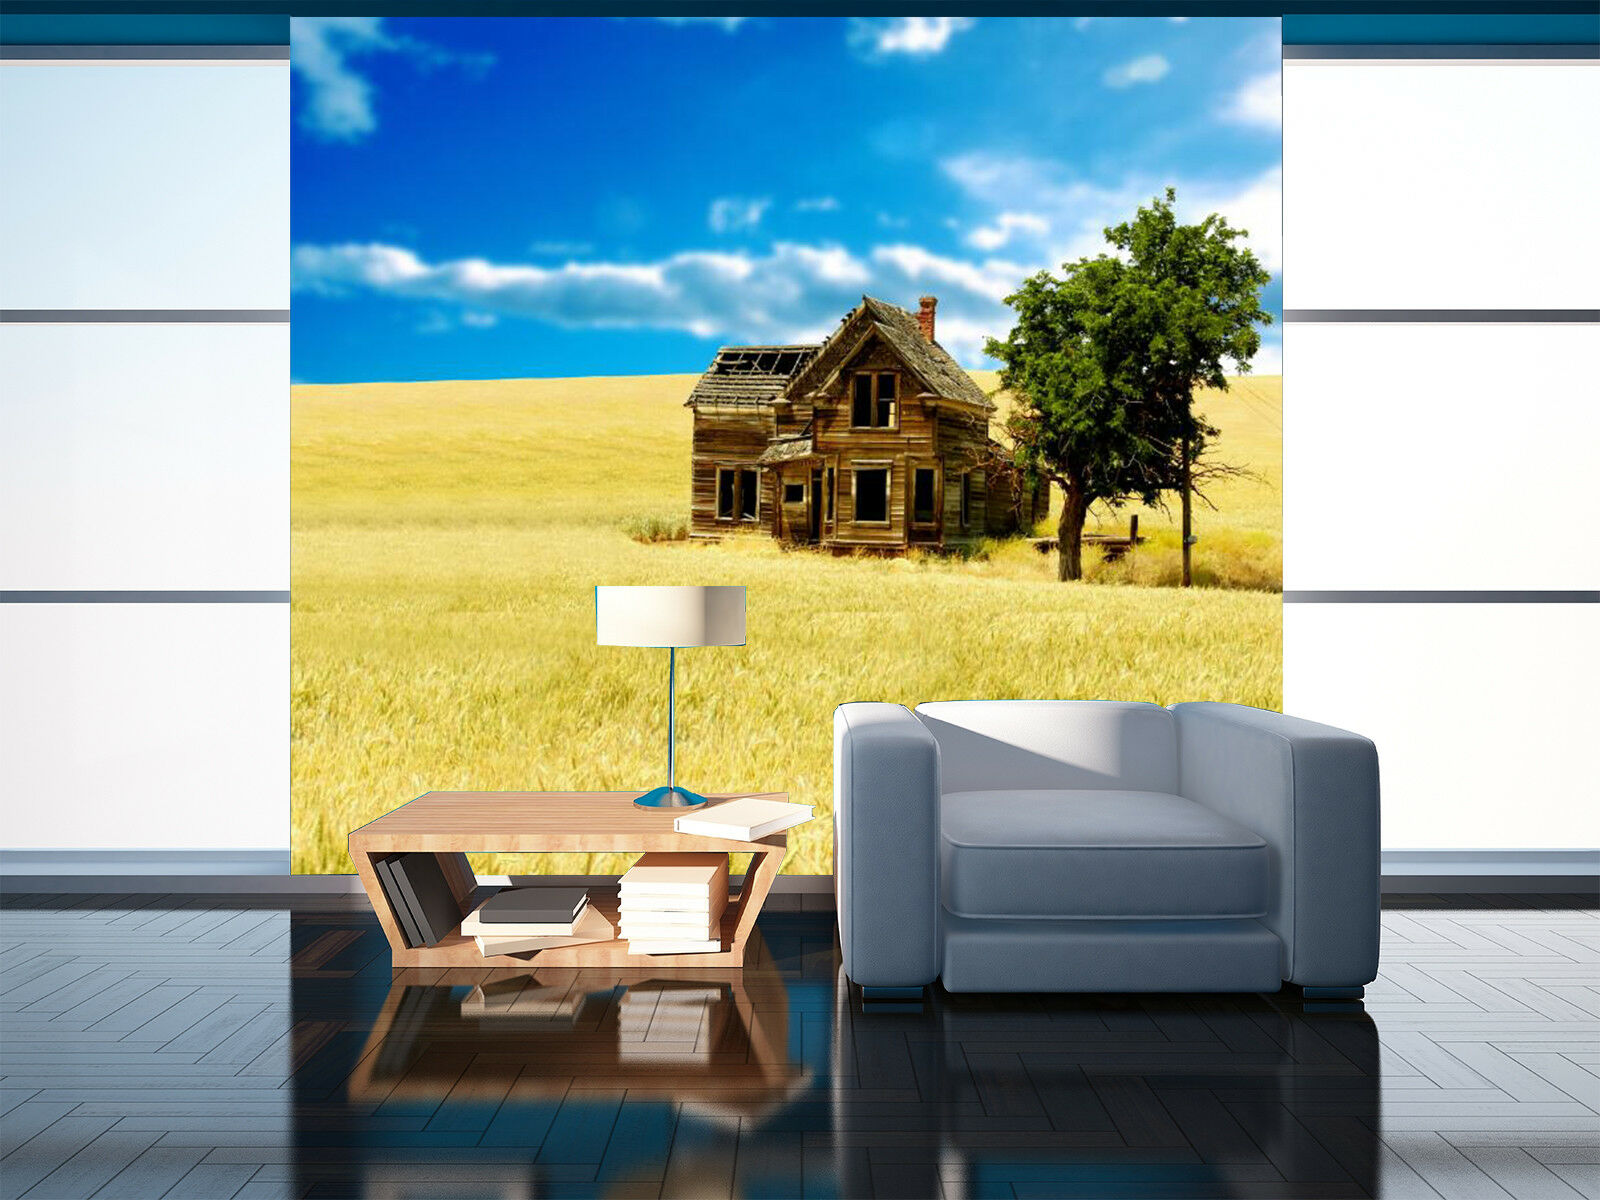 3D House Paddy 4 Wallpaper Murals Wall Print Wallpaper Mural AJ WALL AU Lemon